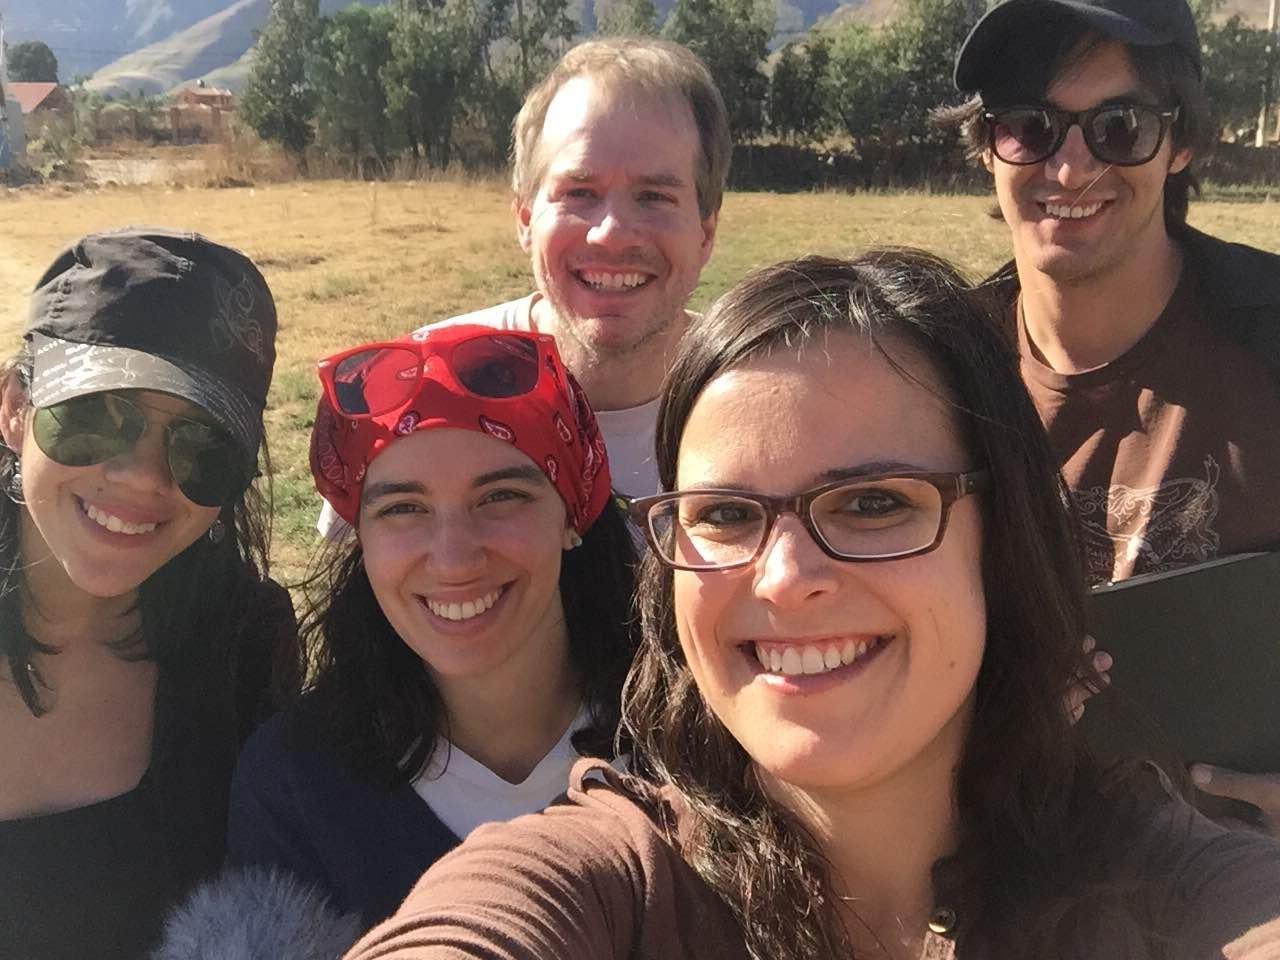 Some of our crew in Cochabamba, Bolivia.